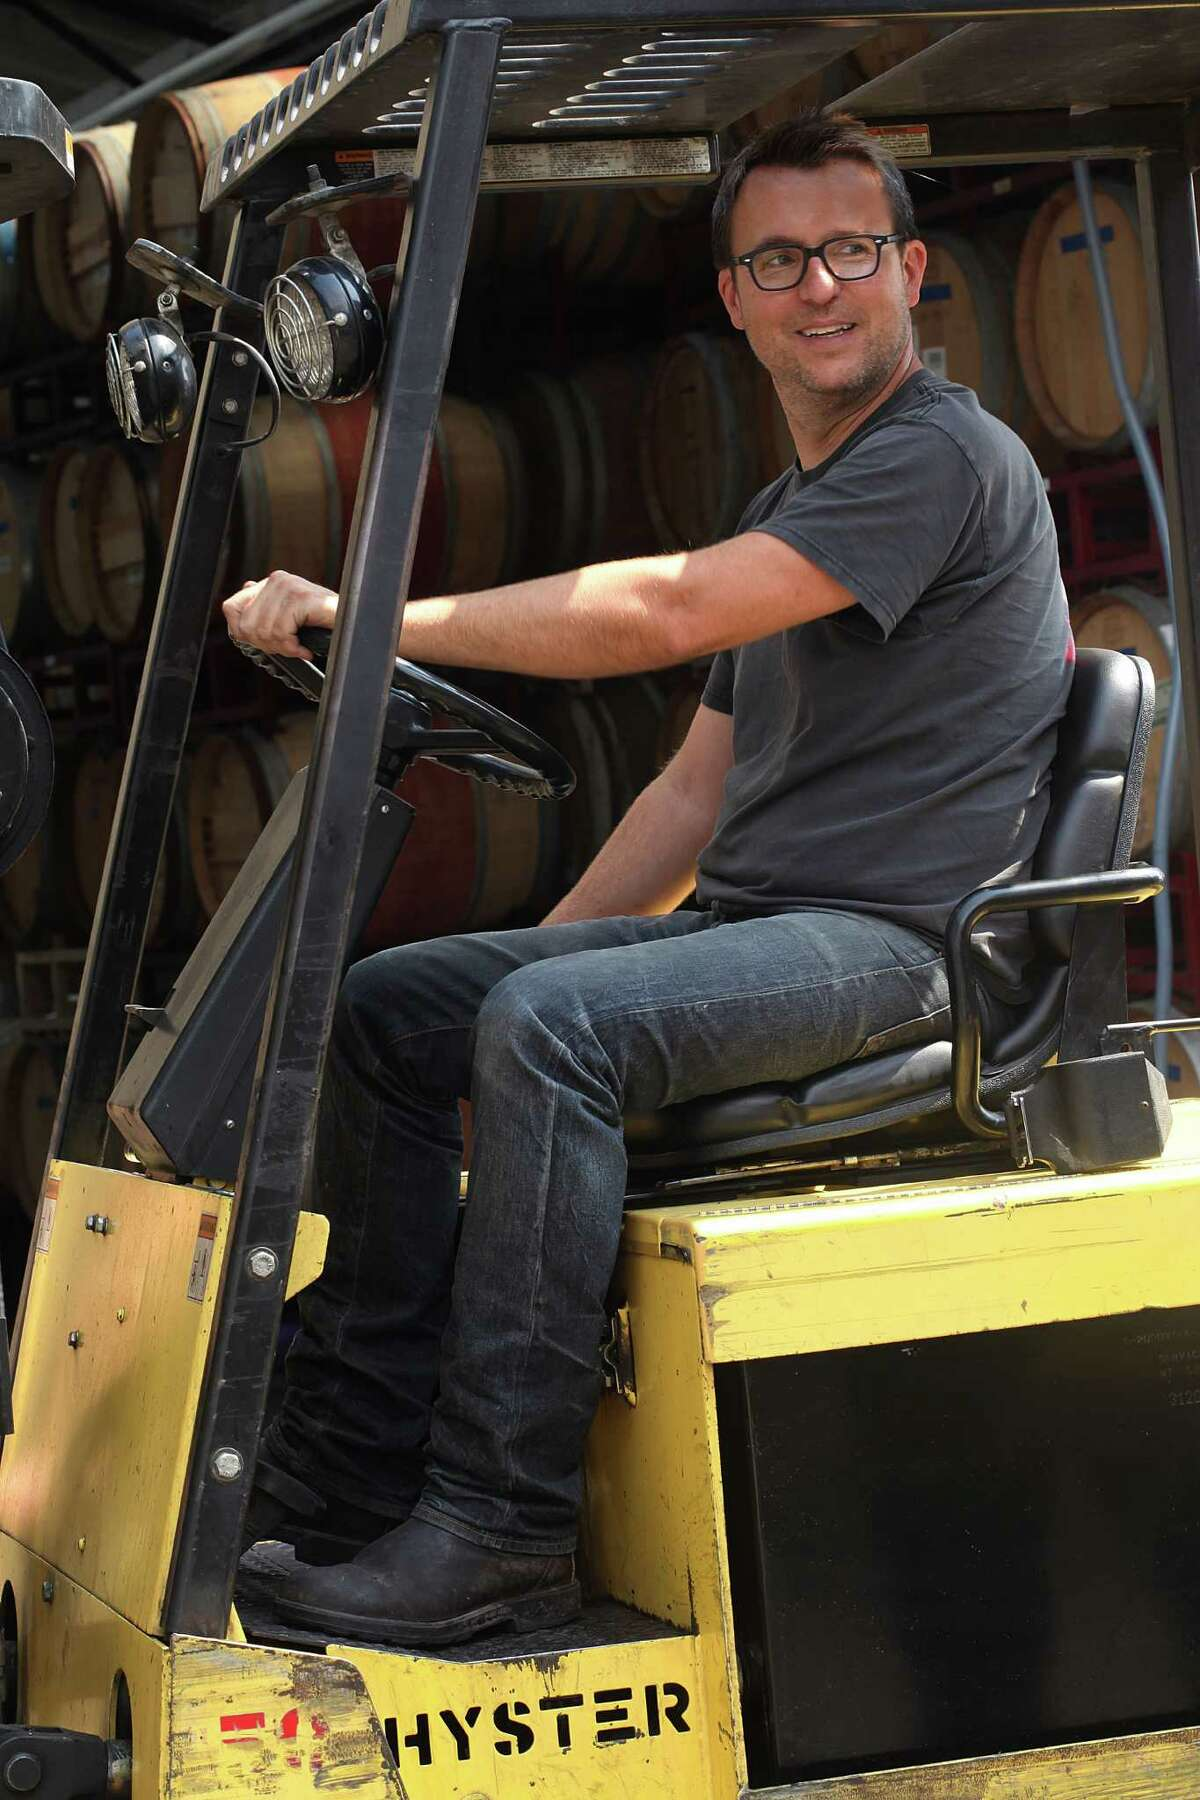 Winemaker Chris Brockway makes Vine Starr in his Berkeley facility - continuing a long tradition of Zinfandel as a fresher, approachable table wine.